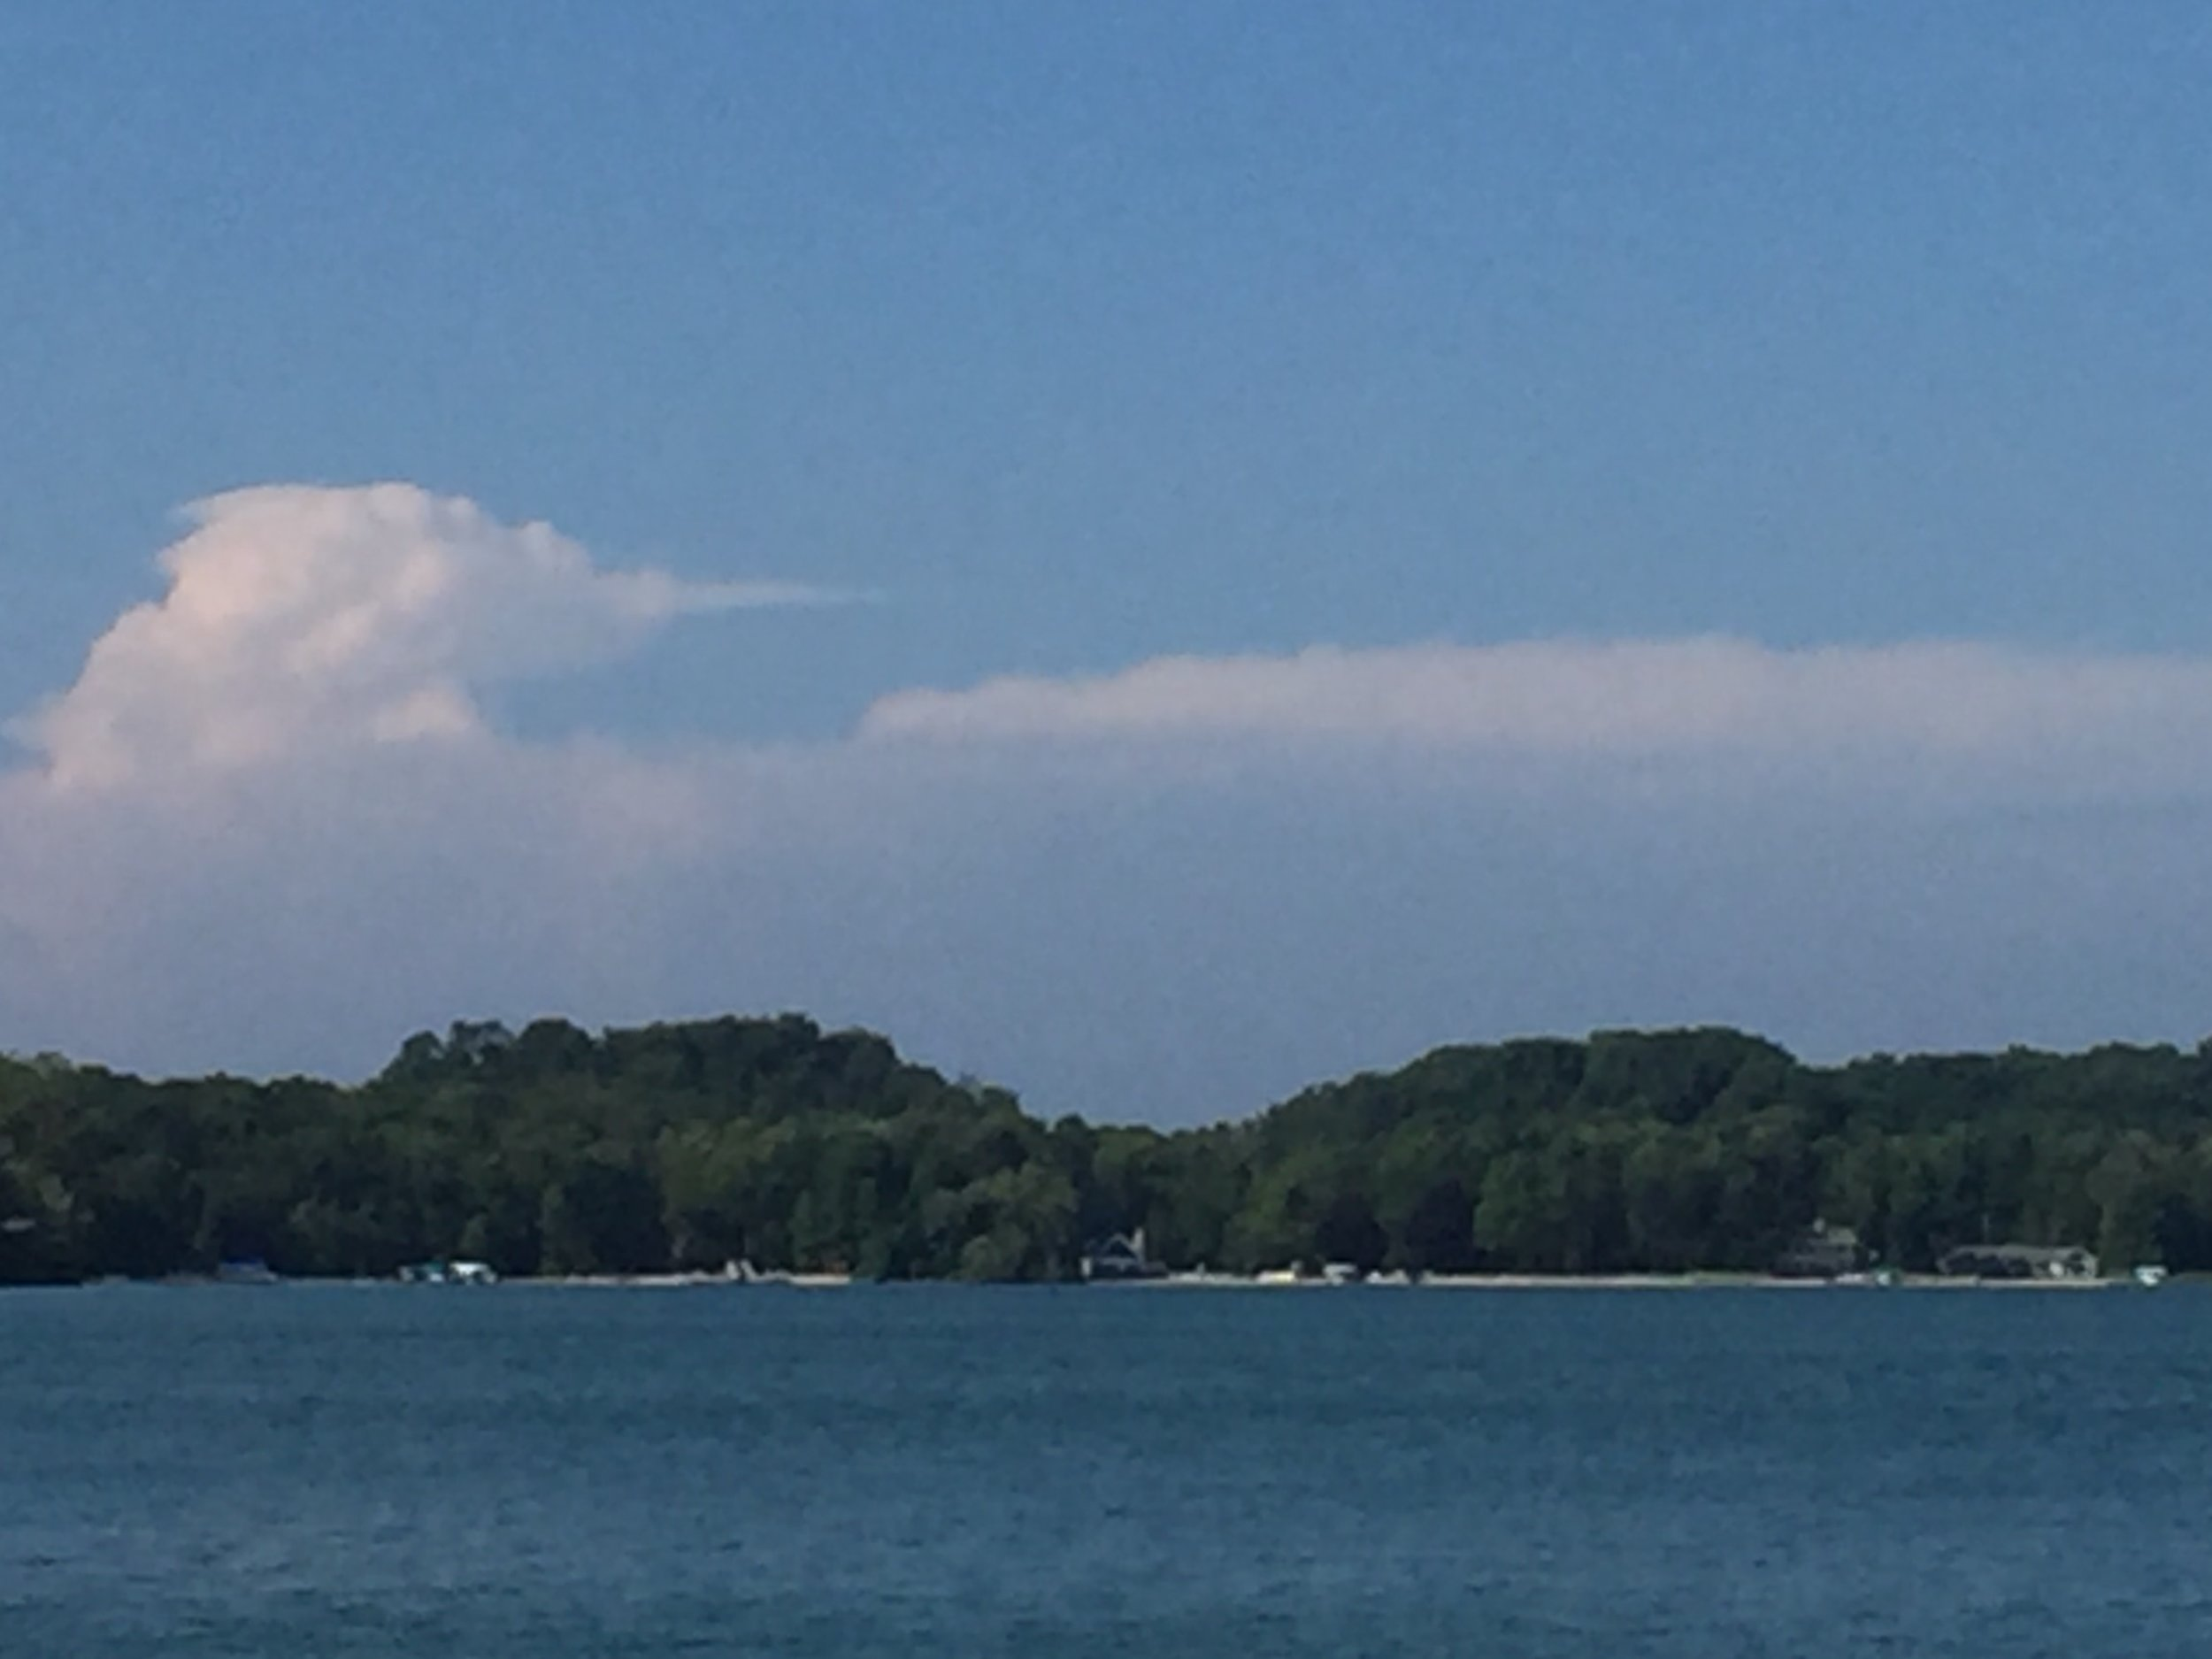 even the clouds look like mergansers!